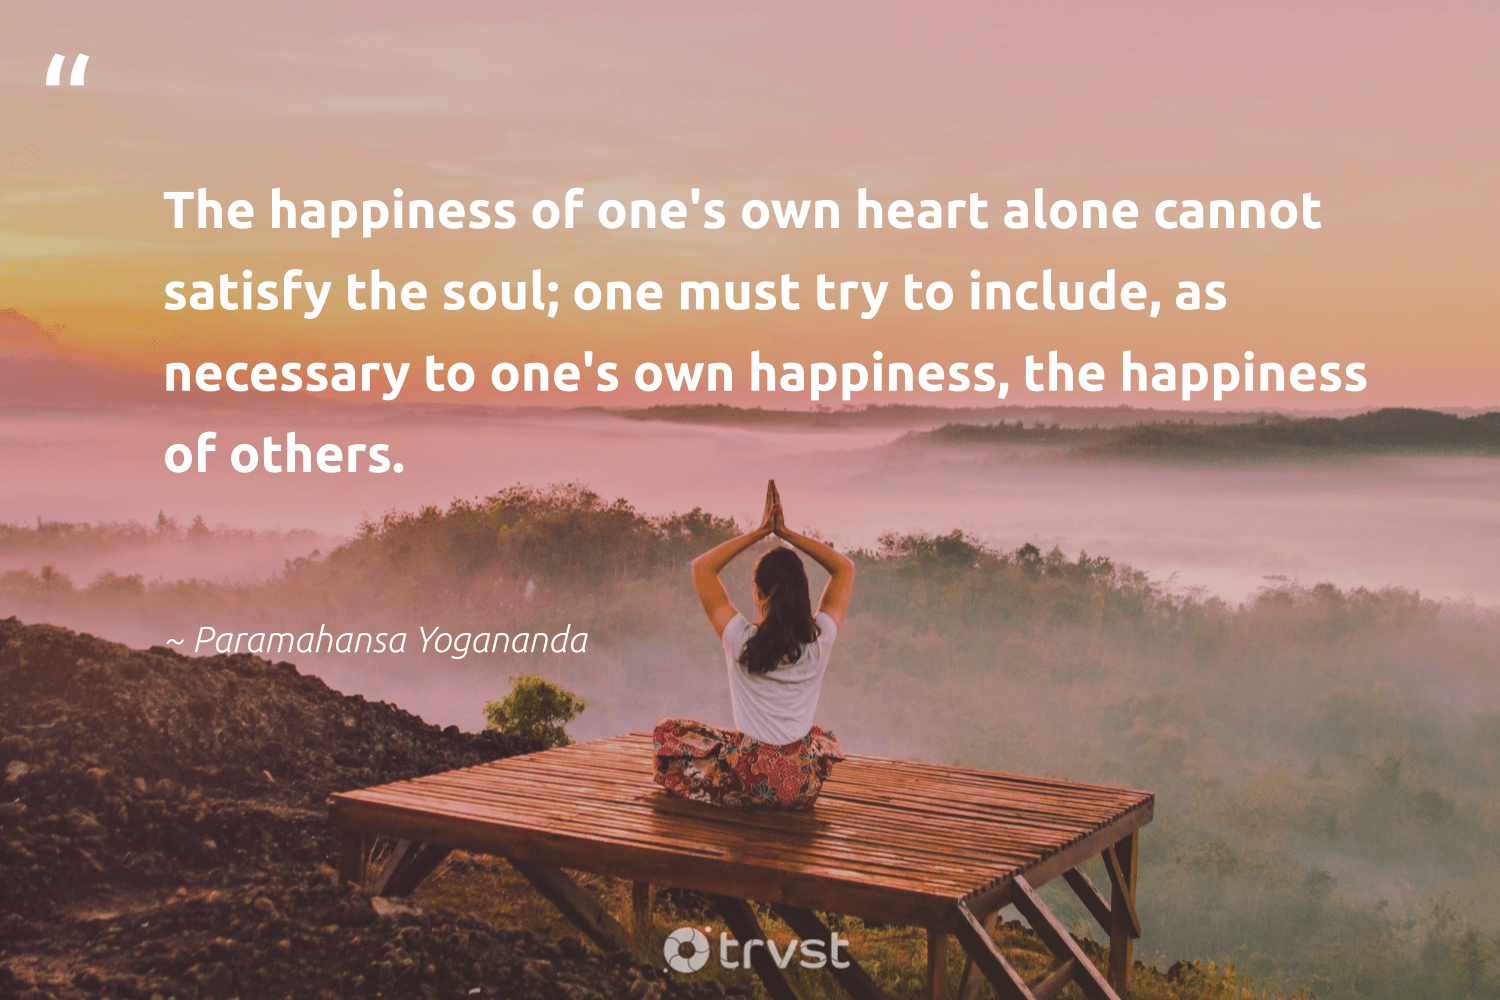 """""""The happiness of one's own heart alone cannot satisfy the soul; one must try to include, as necessary to one's own happiness, the happiness of others.""""  - Paramahansa Yogananda #trvst #quotes #happiness #begreat #ecoconscious #togetherwecan #takeaction #nevergiveup #socialimpact #health #dotherightthing #changemakers"""